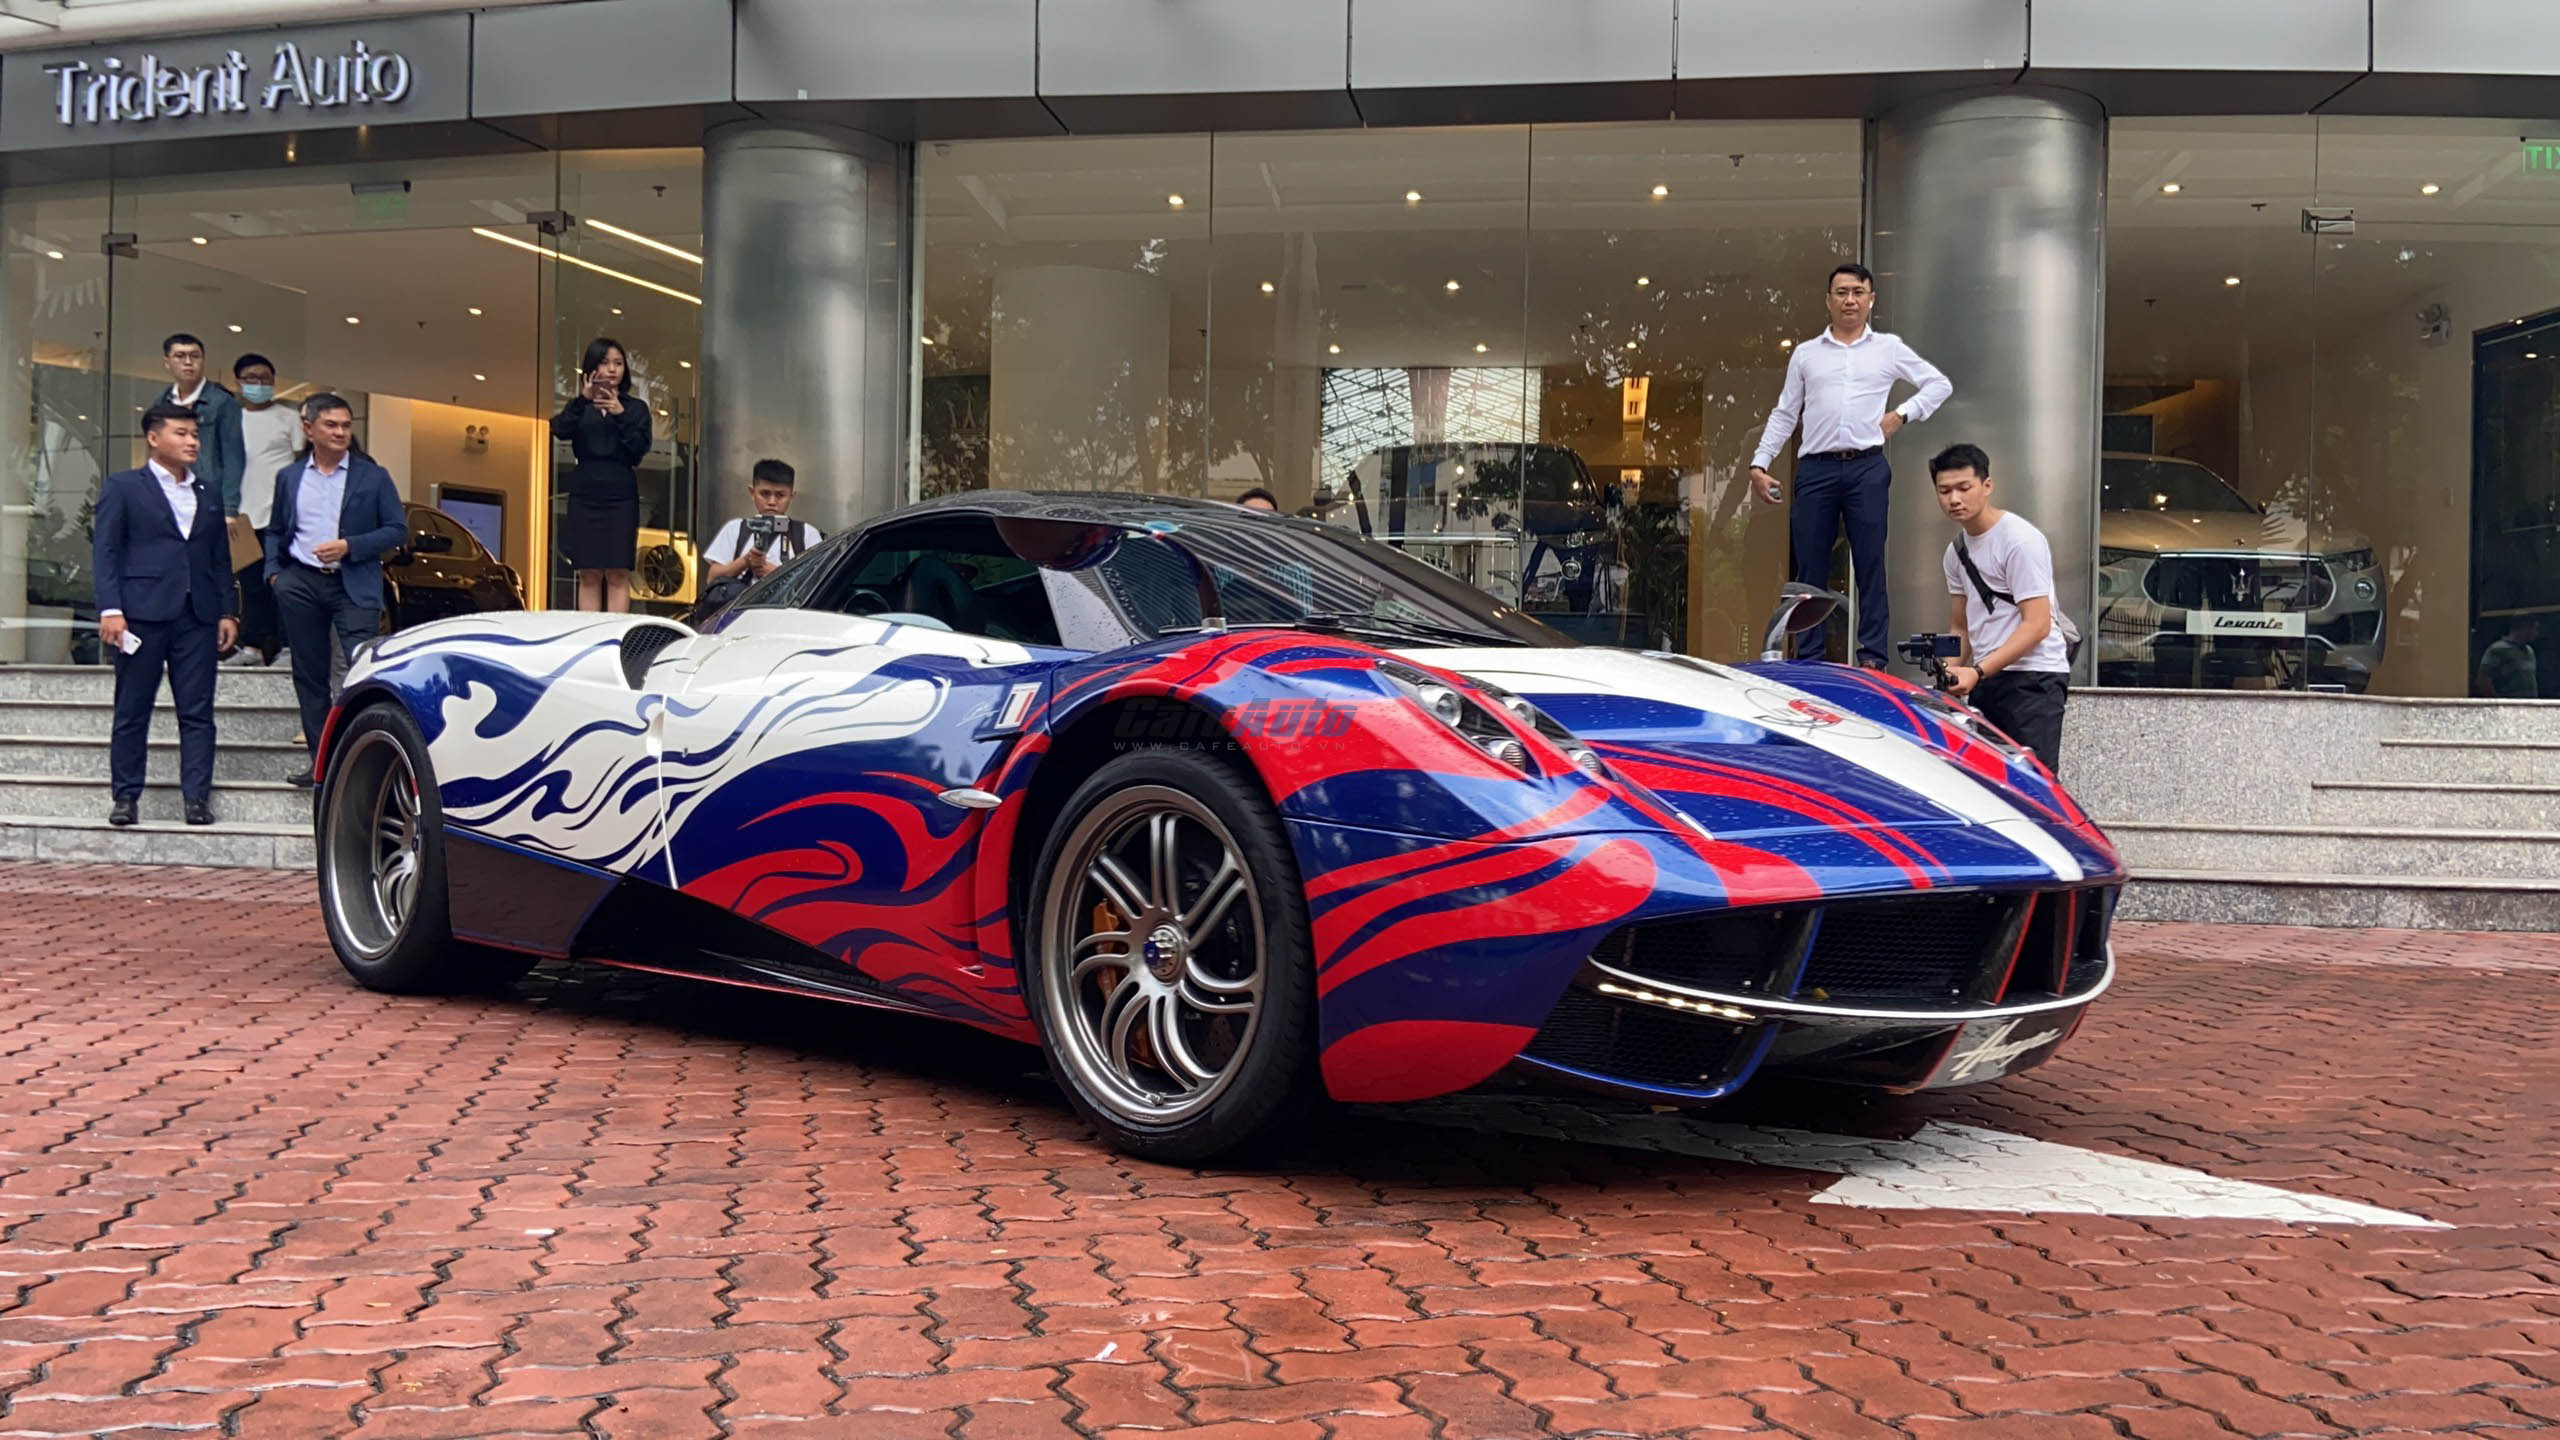 paganihuayra-cafeautovn-19